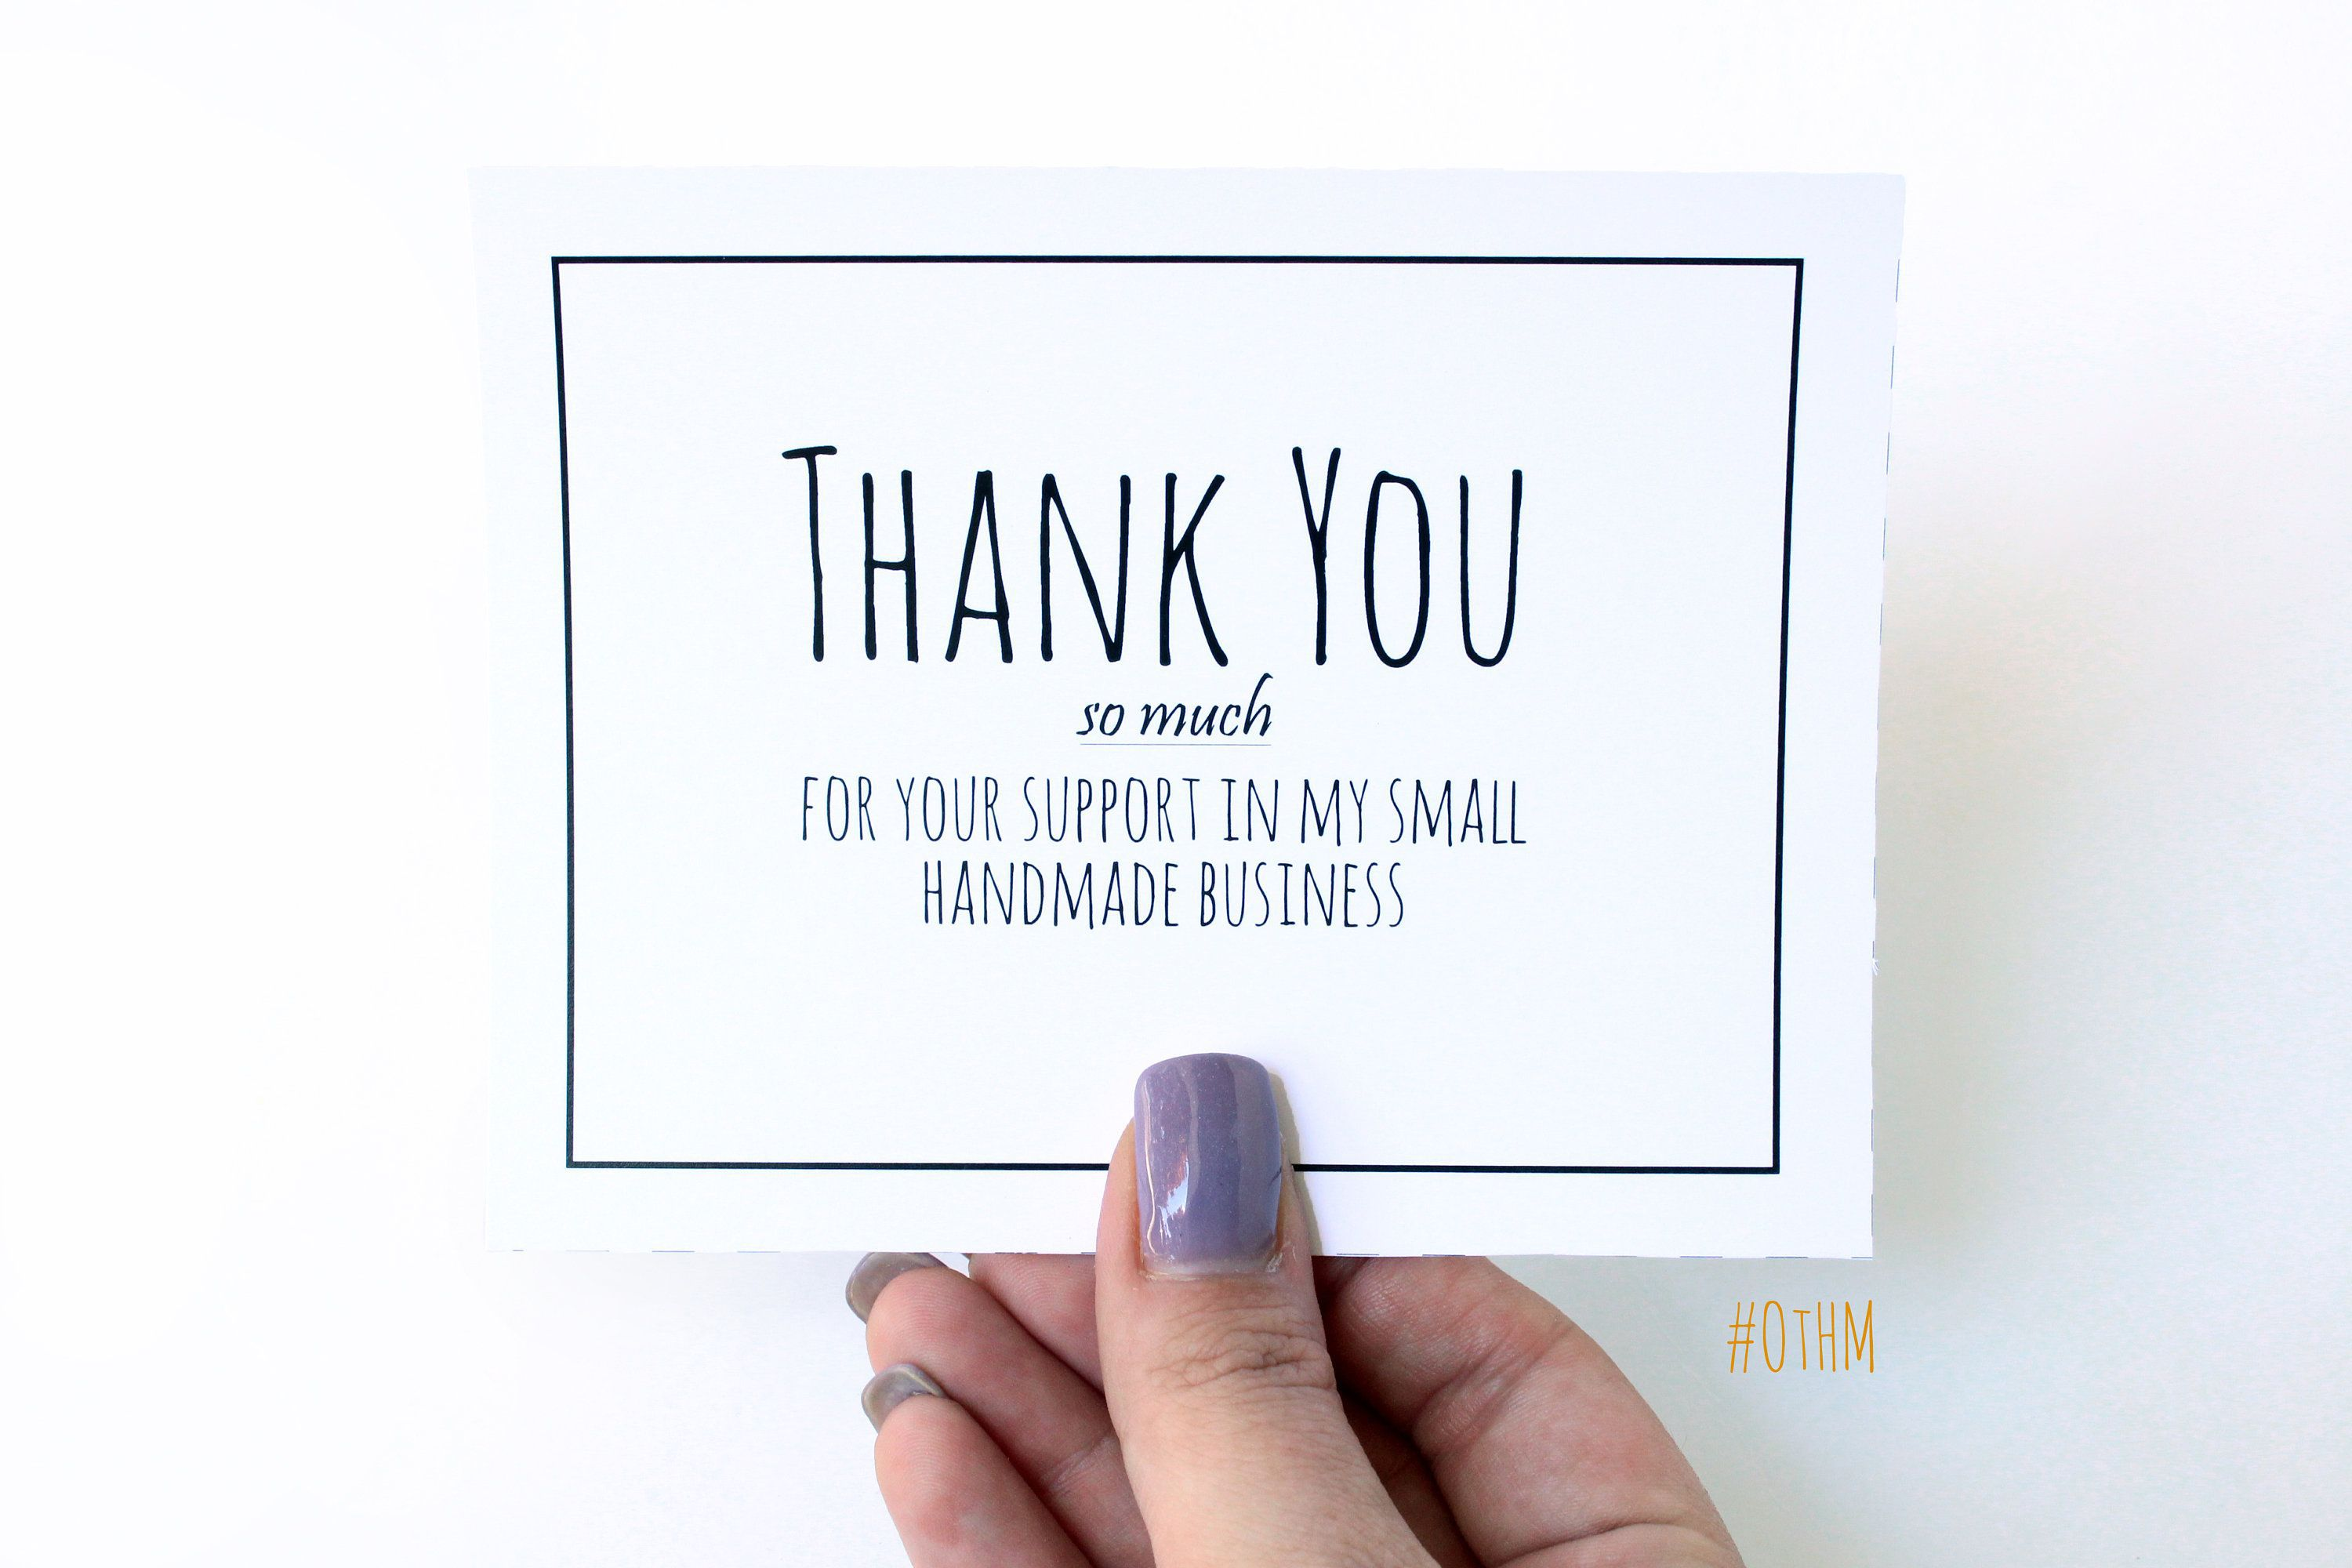 003 Fantastic Thank You Note Template Pdf High Resolution  Card Free Sample Letter For Donation Of GoodFull